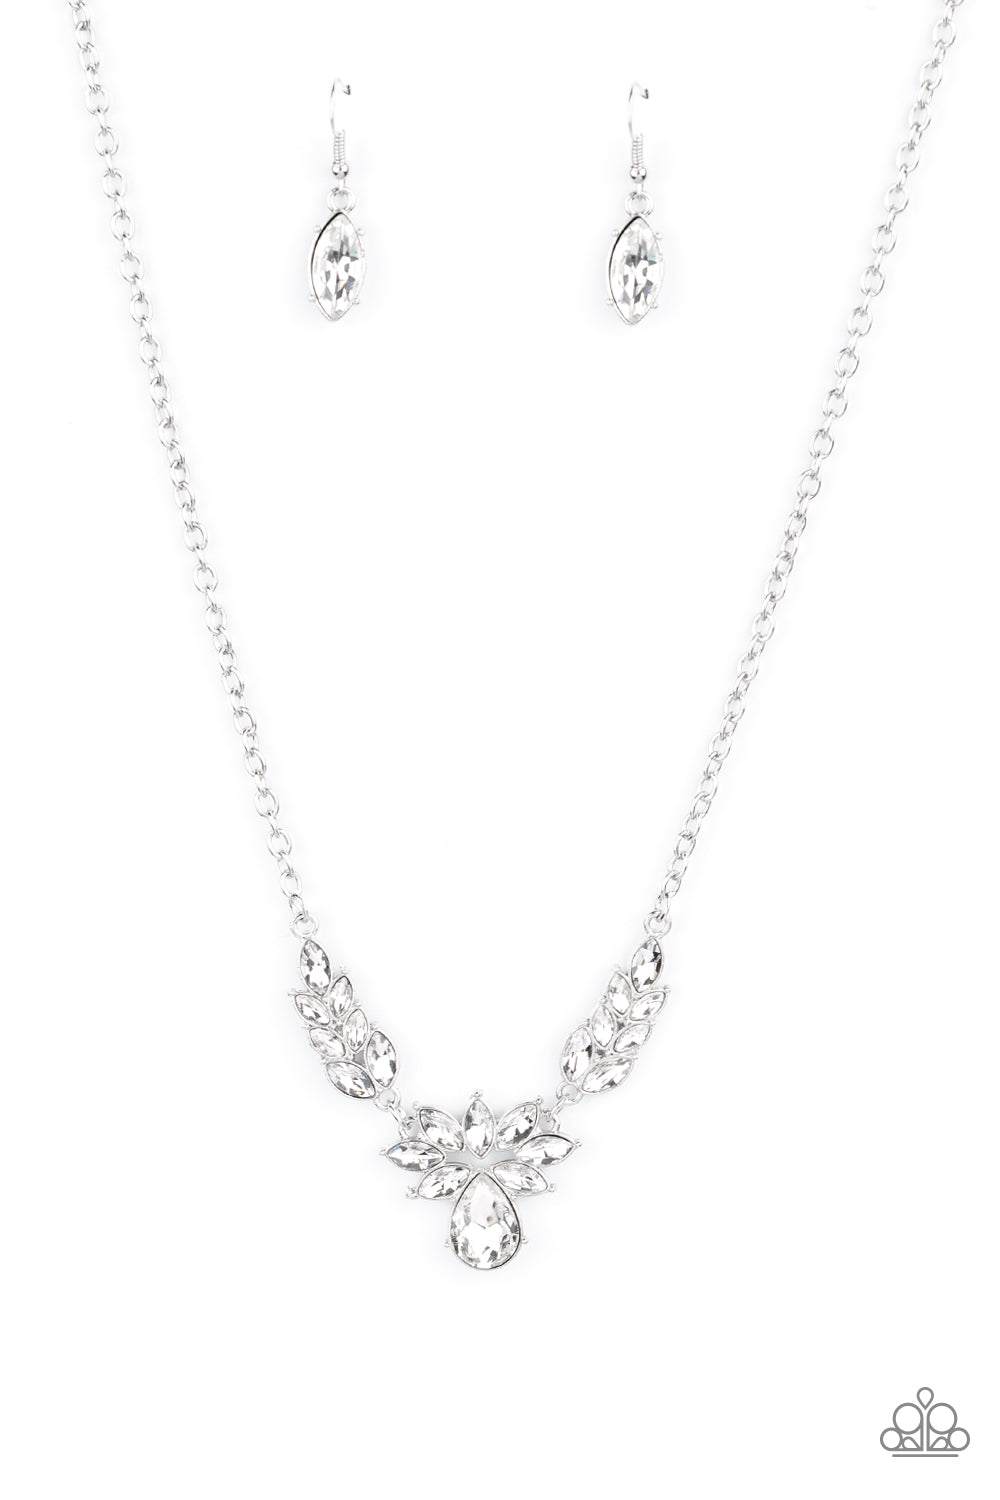 Paparazzi Necklace ~ I Need Some HEIR - White